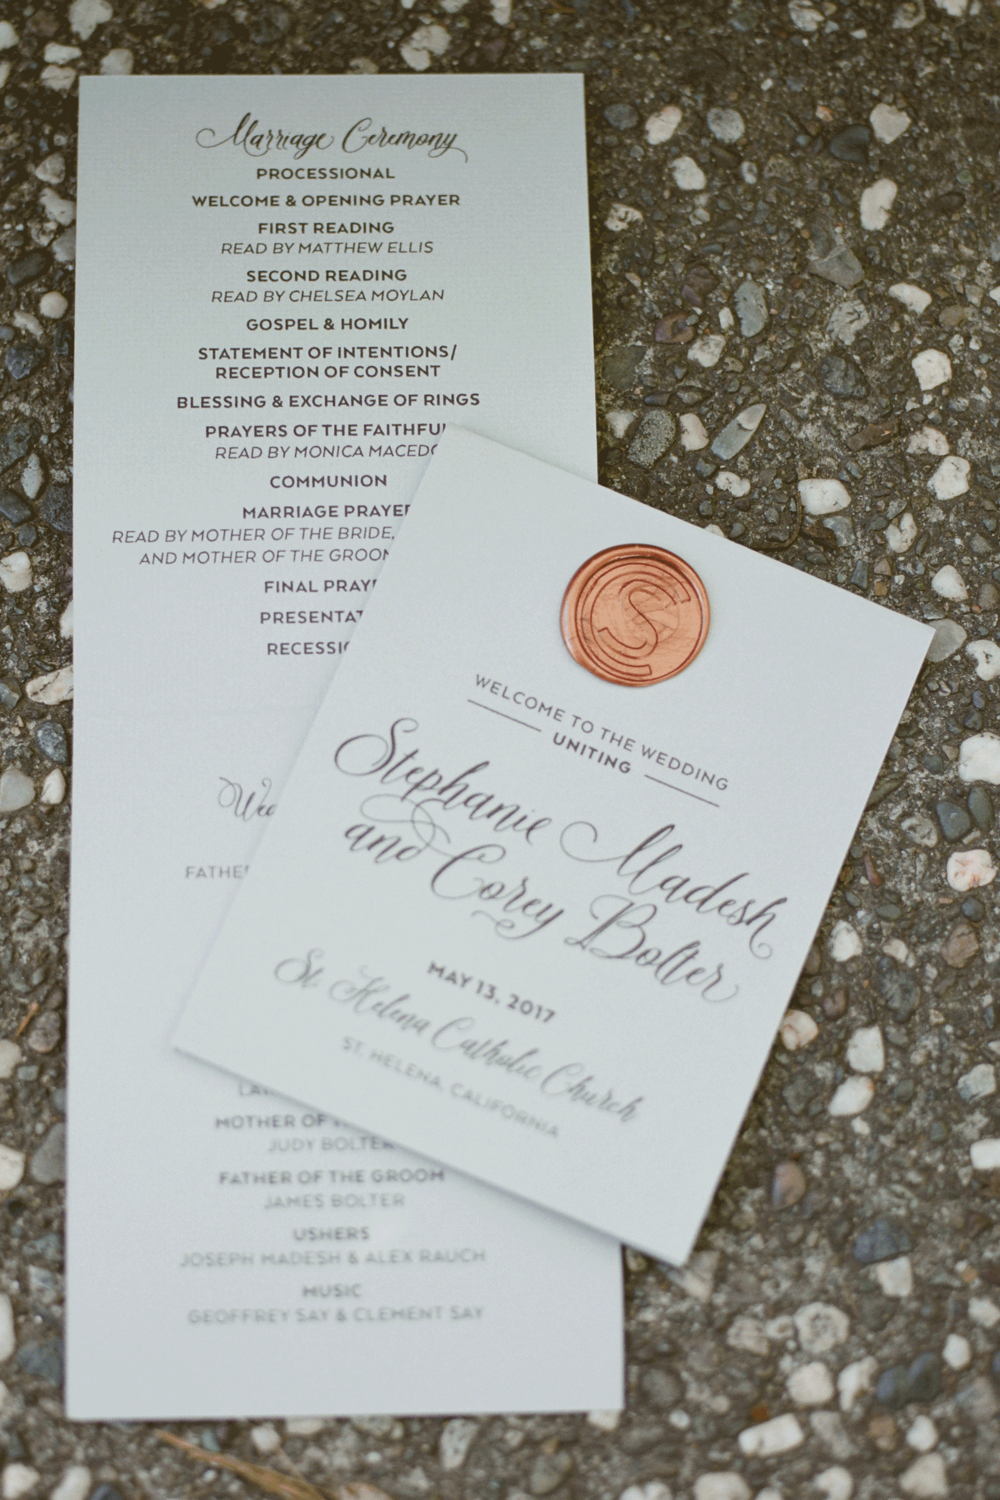 Belvedere_CeremonyProgram2.png